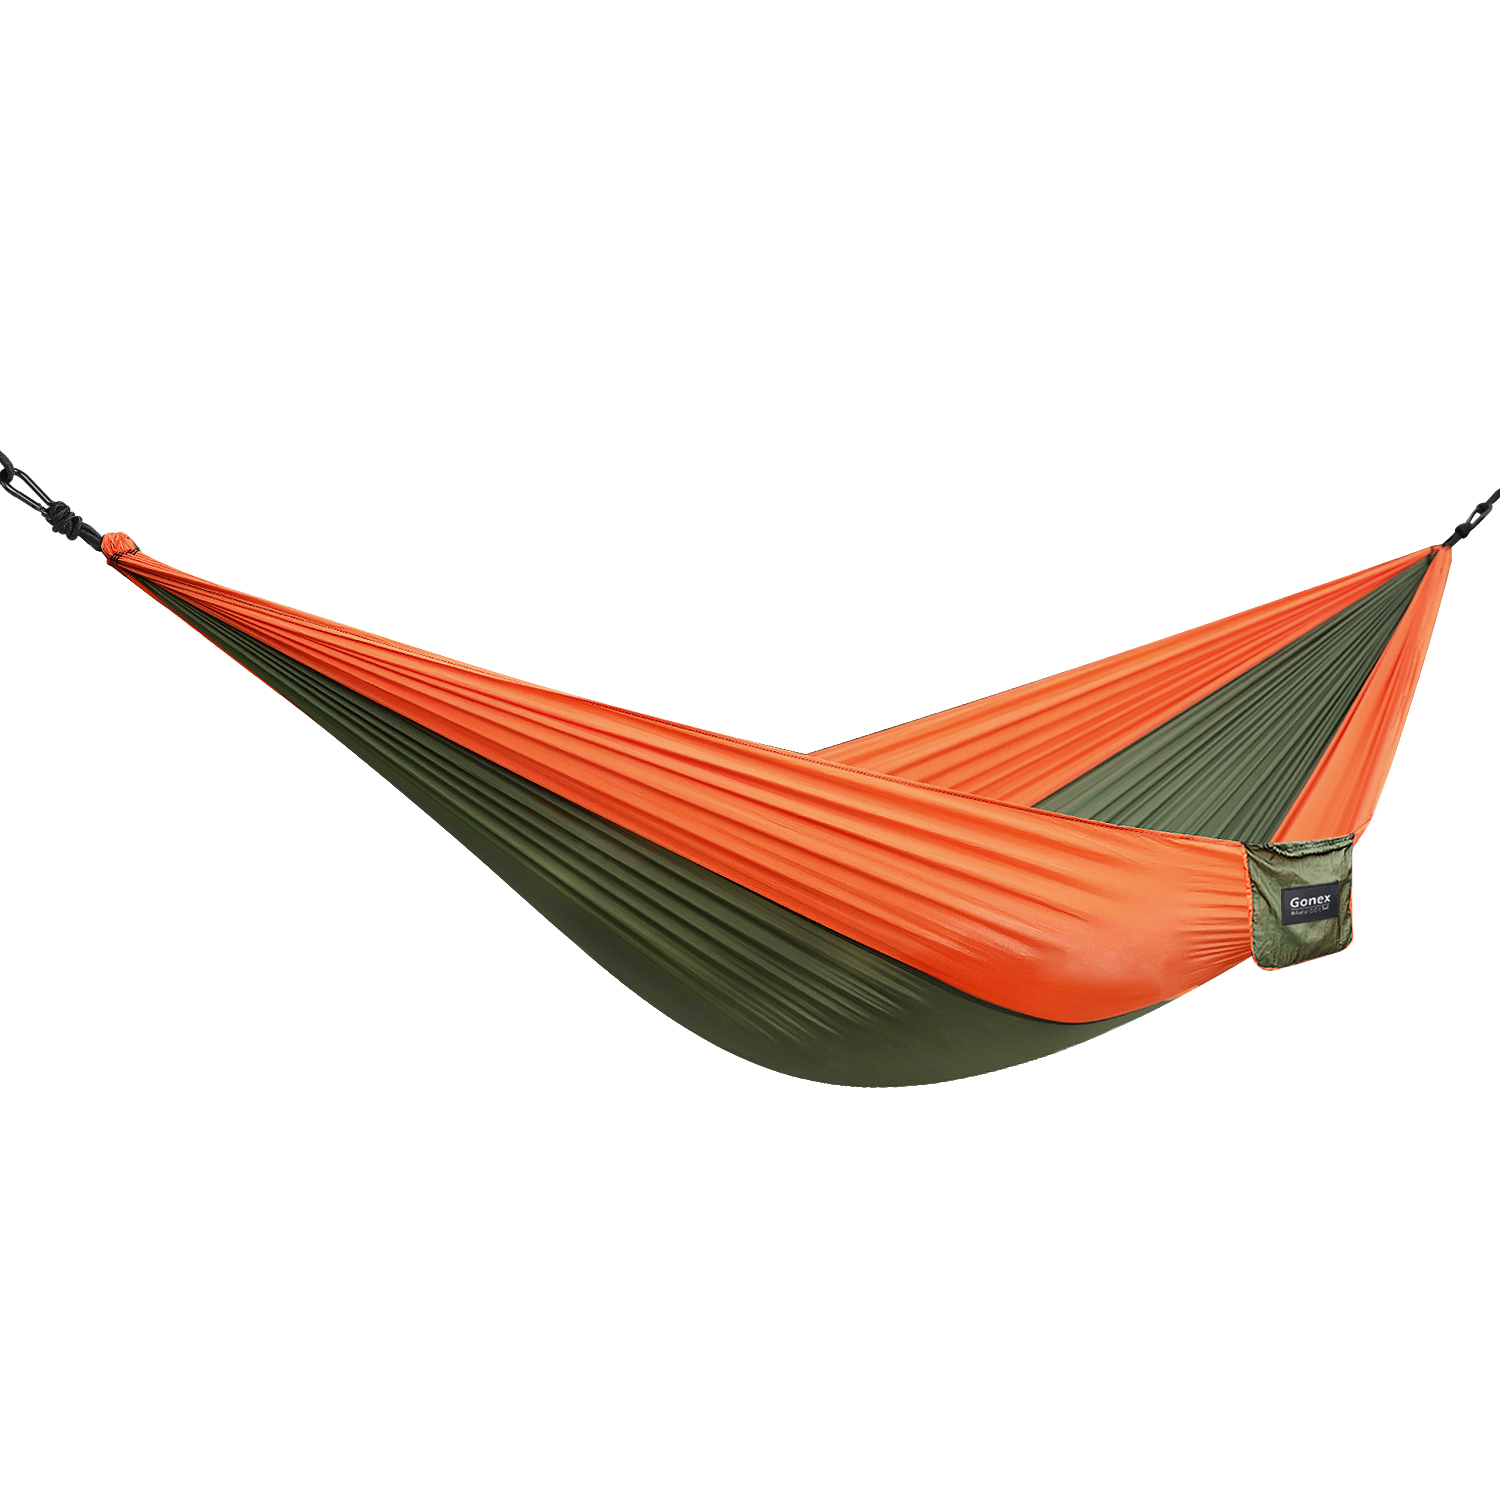 Outdoor Travel Camping Parachute Nylon Fabric Double